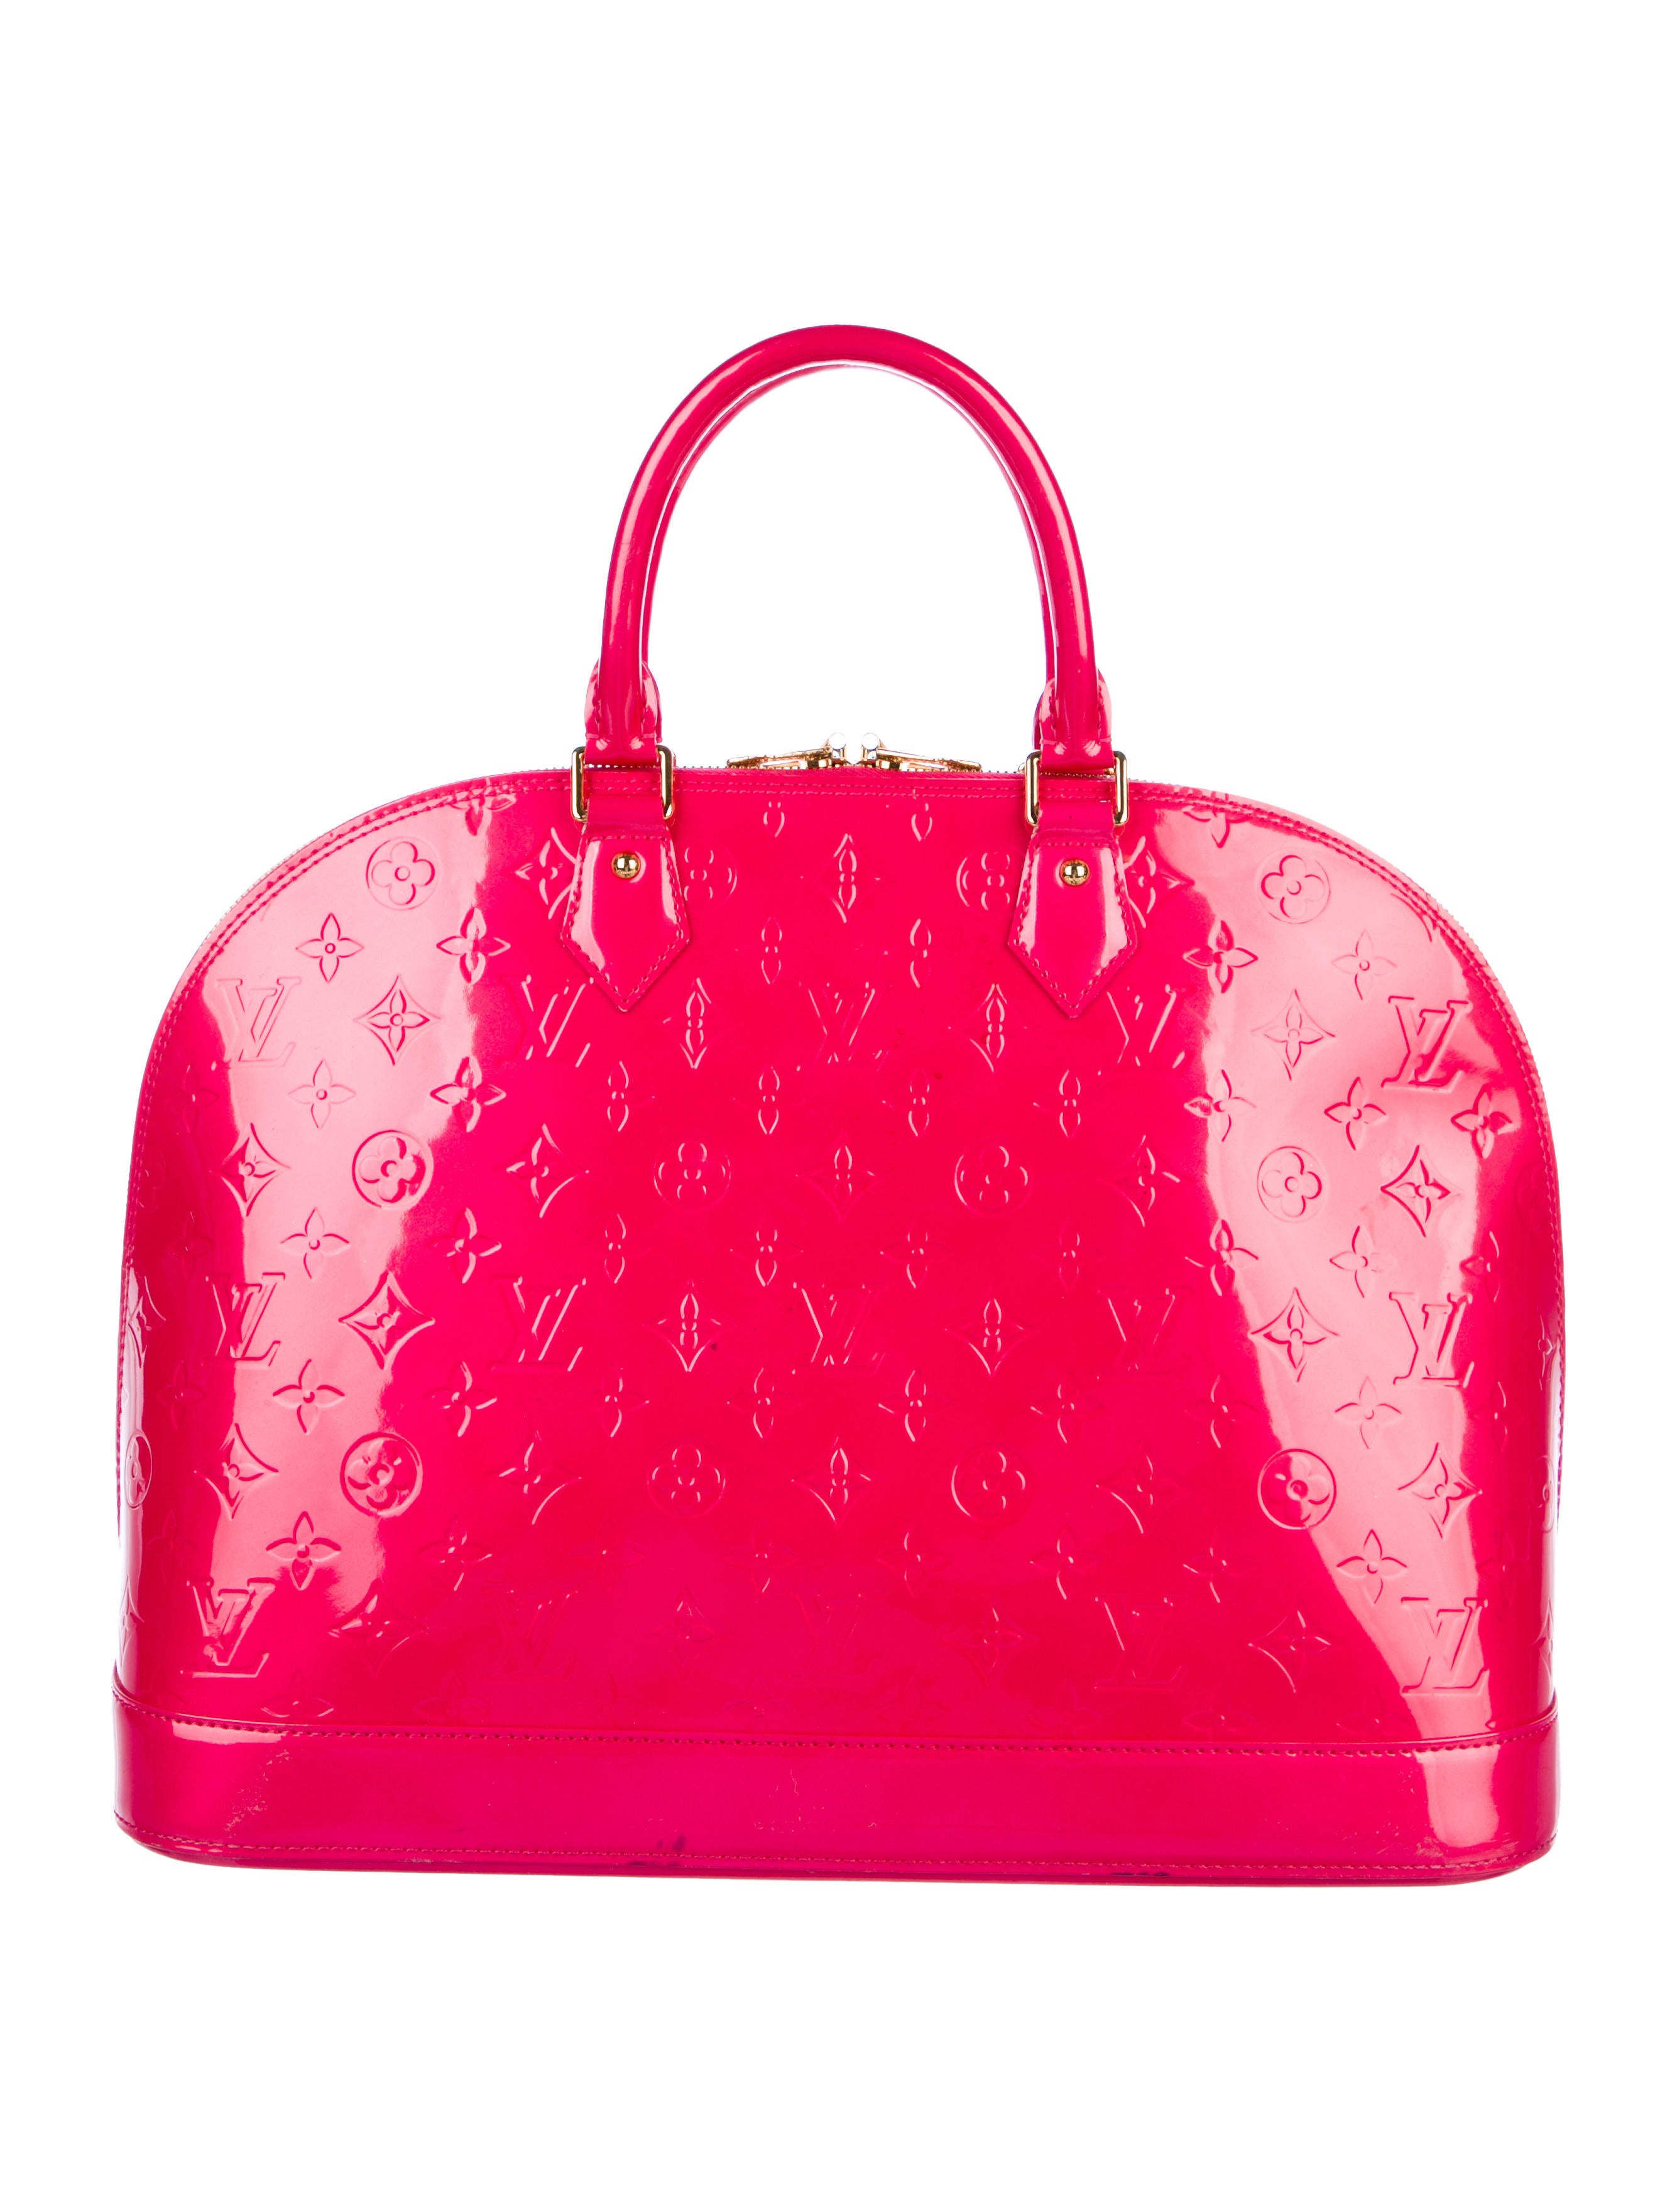 08617071458b Louis Vuitton Vernis Alma GM - Handbags - LOU165456